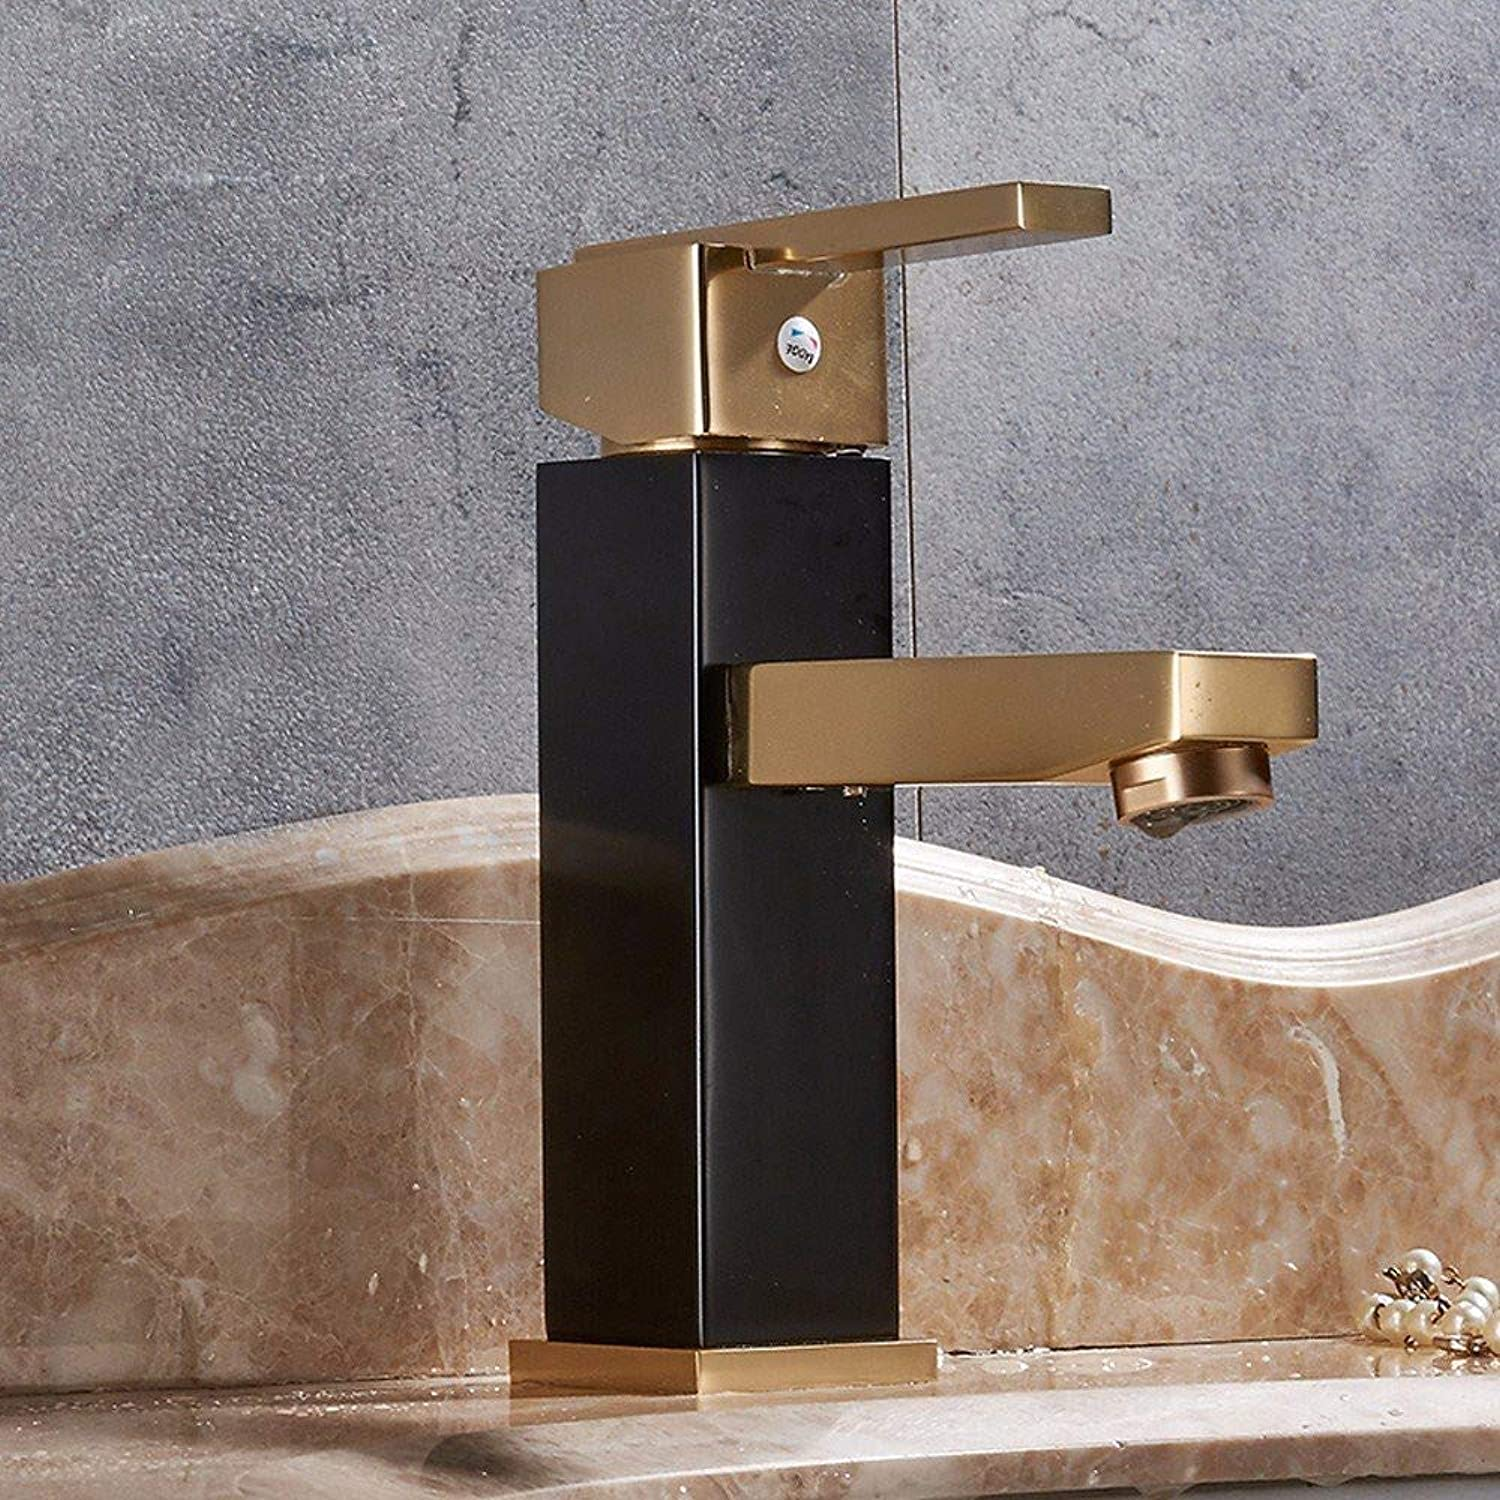 360° redating Faucet Retro Faucetblack gold Basin Hot and Cold Faucet